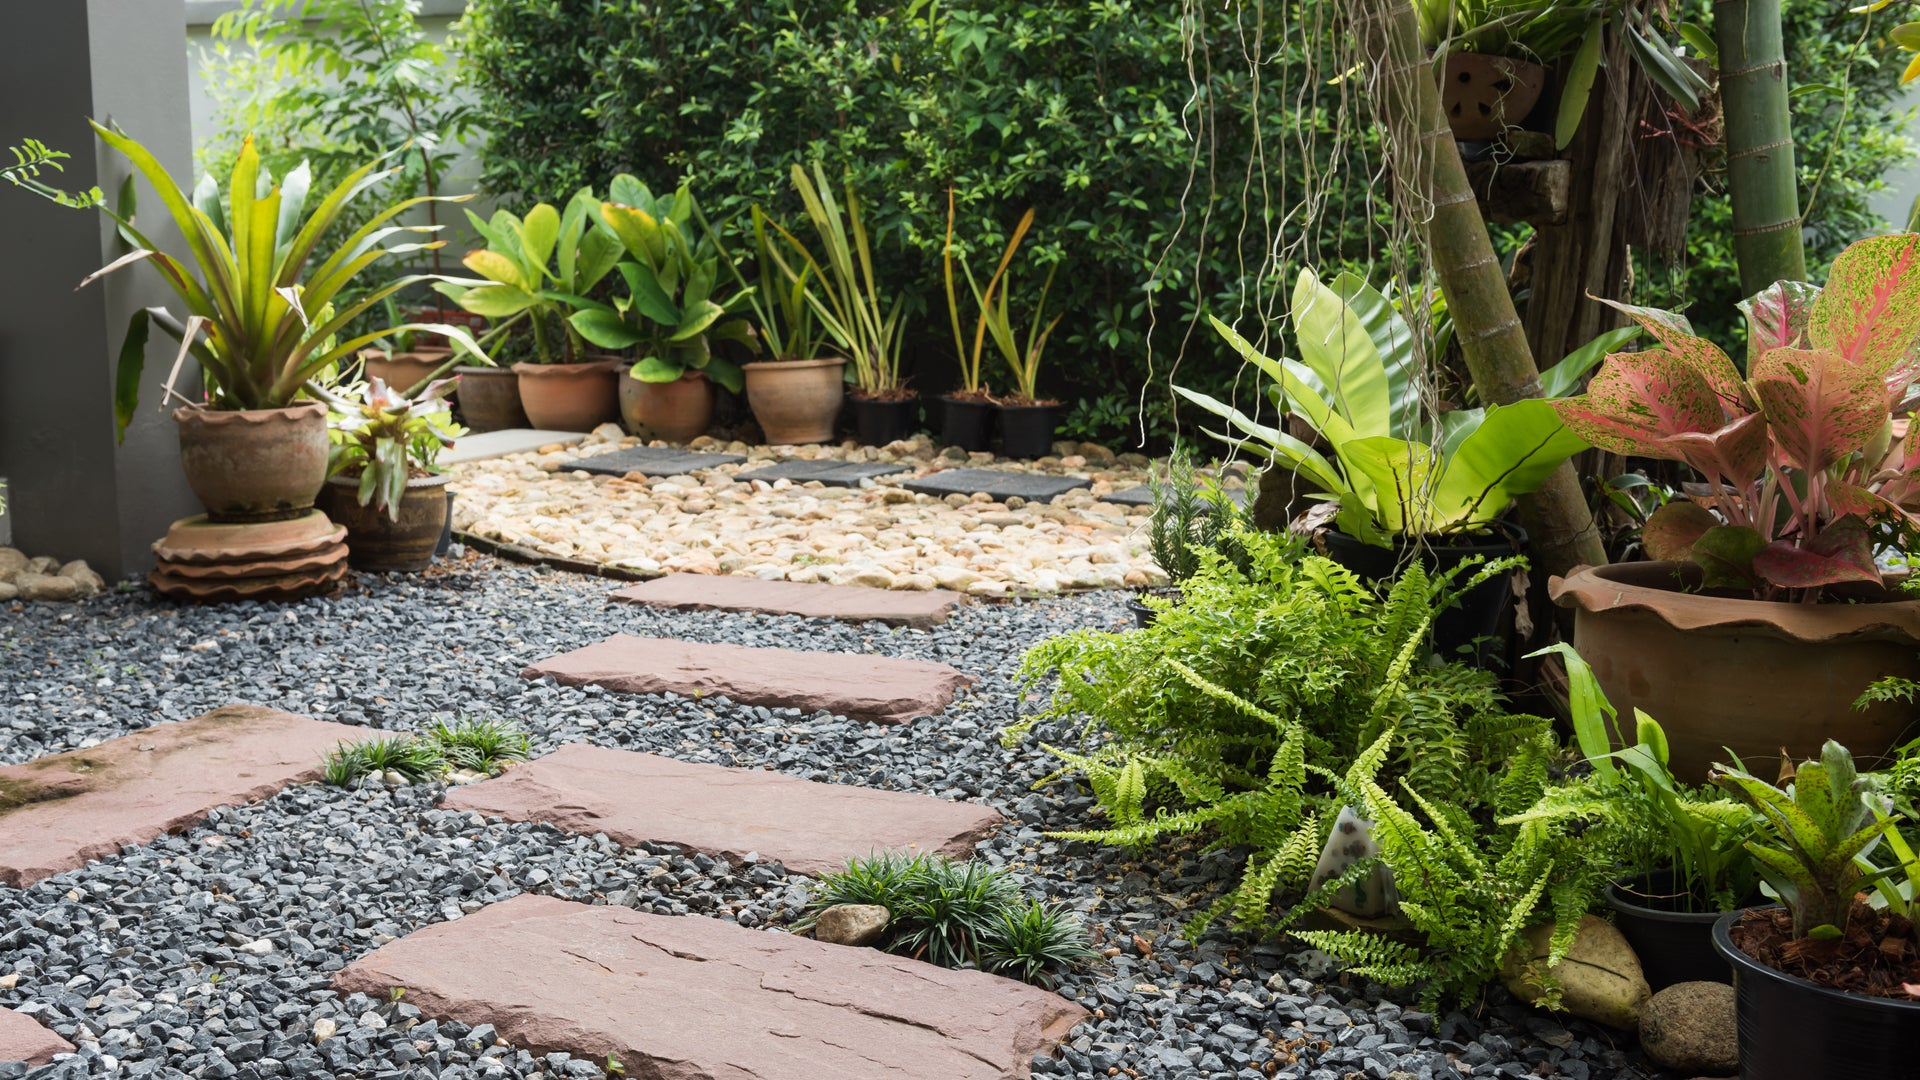 Can Rubber Mulch Be The New Rock Garden